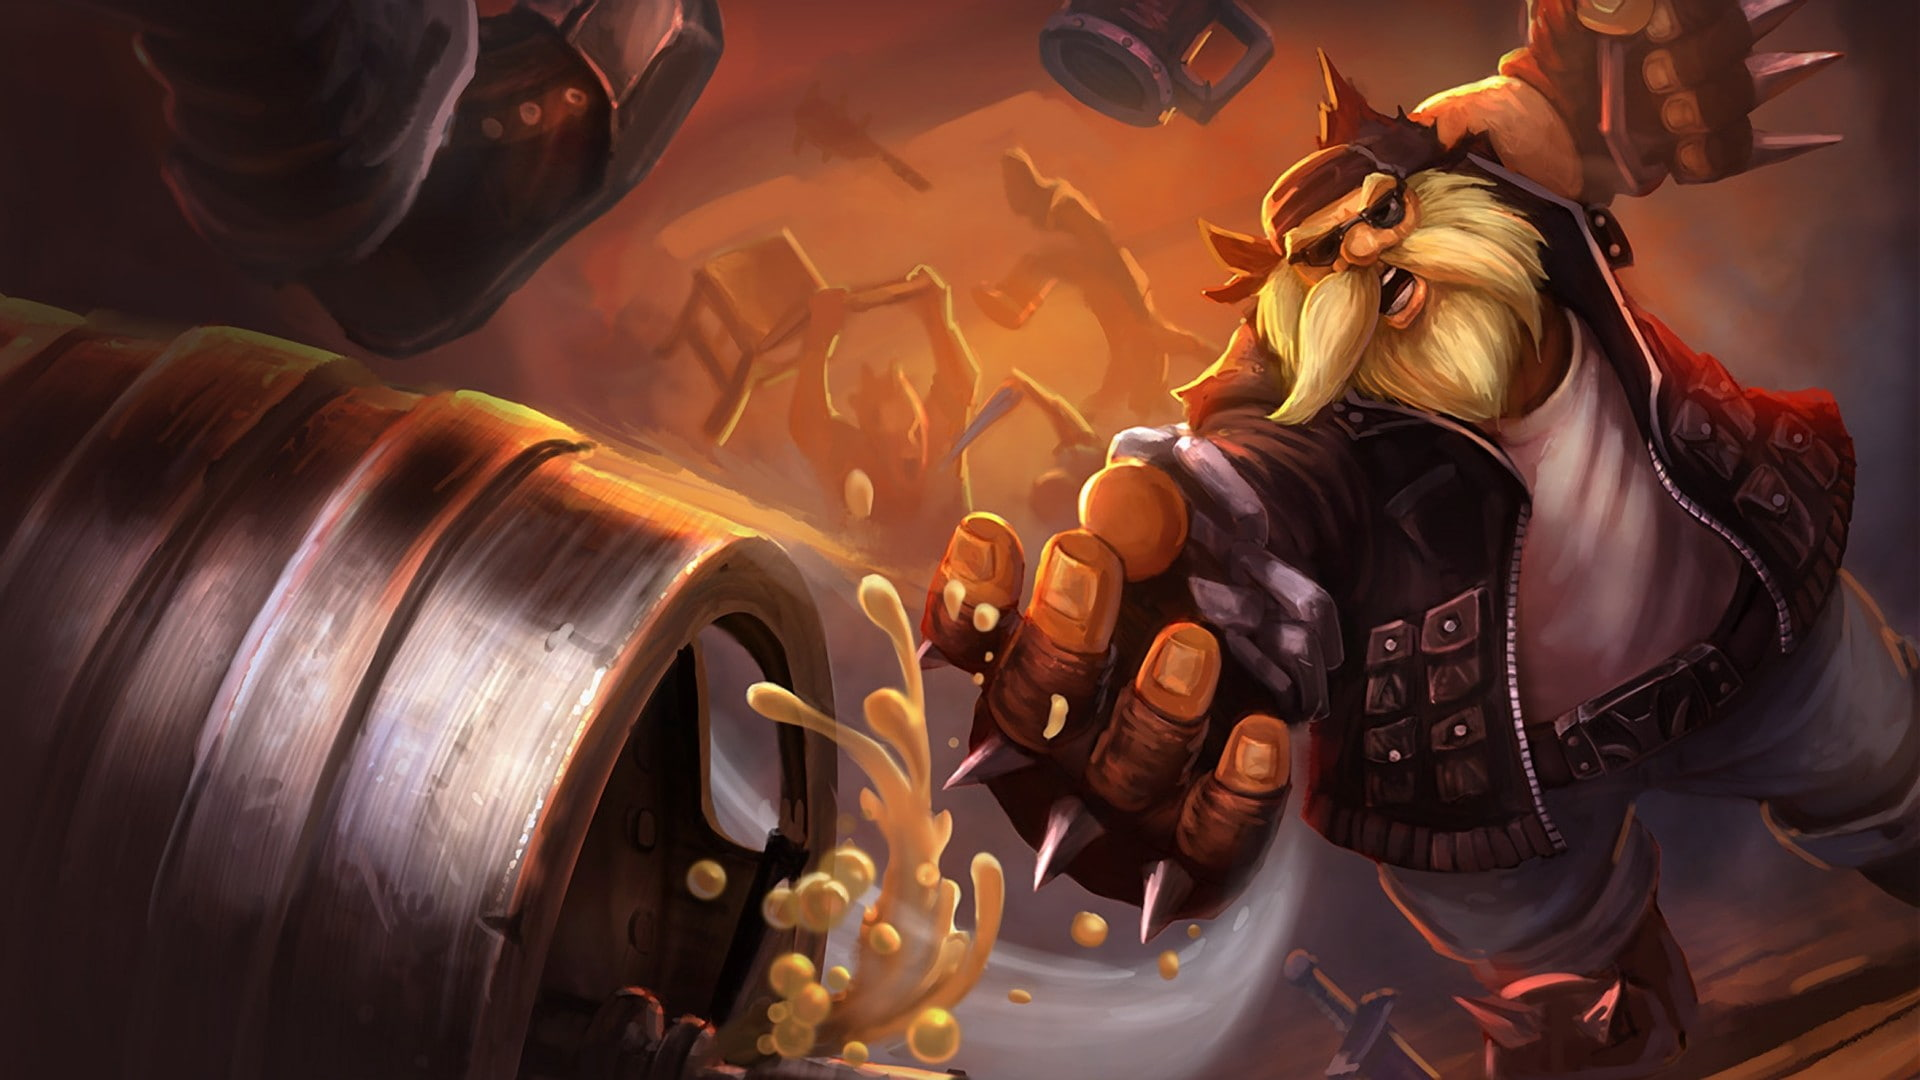 HD wallpaper Gragas League Of Legends Wallpaper Flare 1920x1080